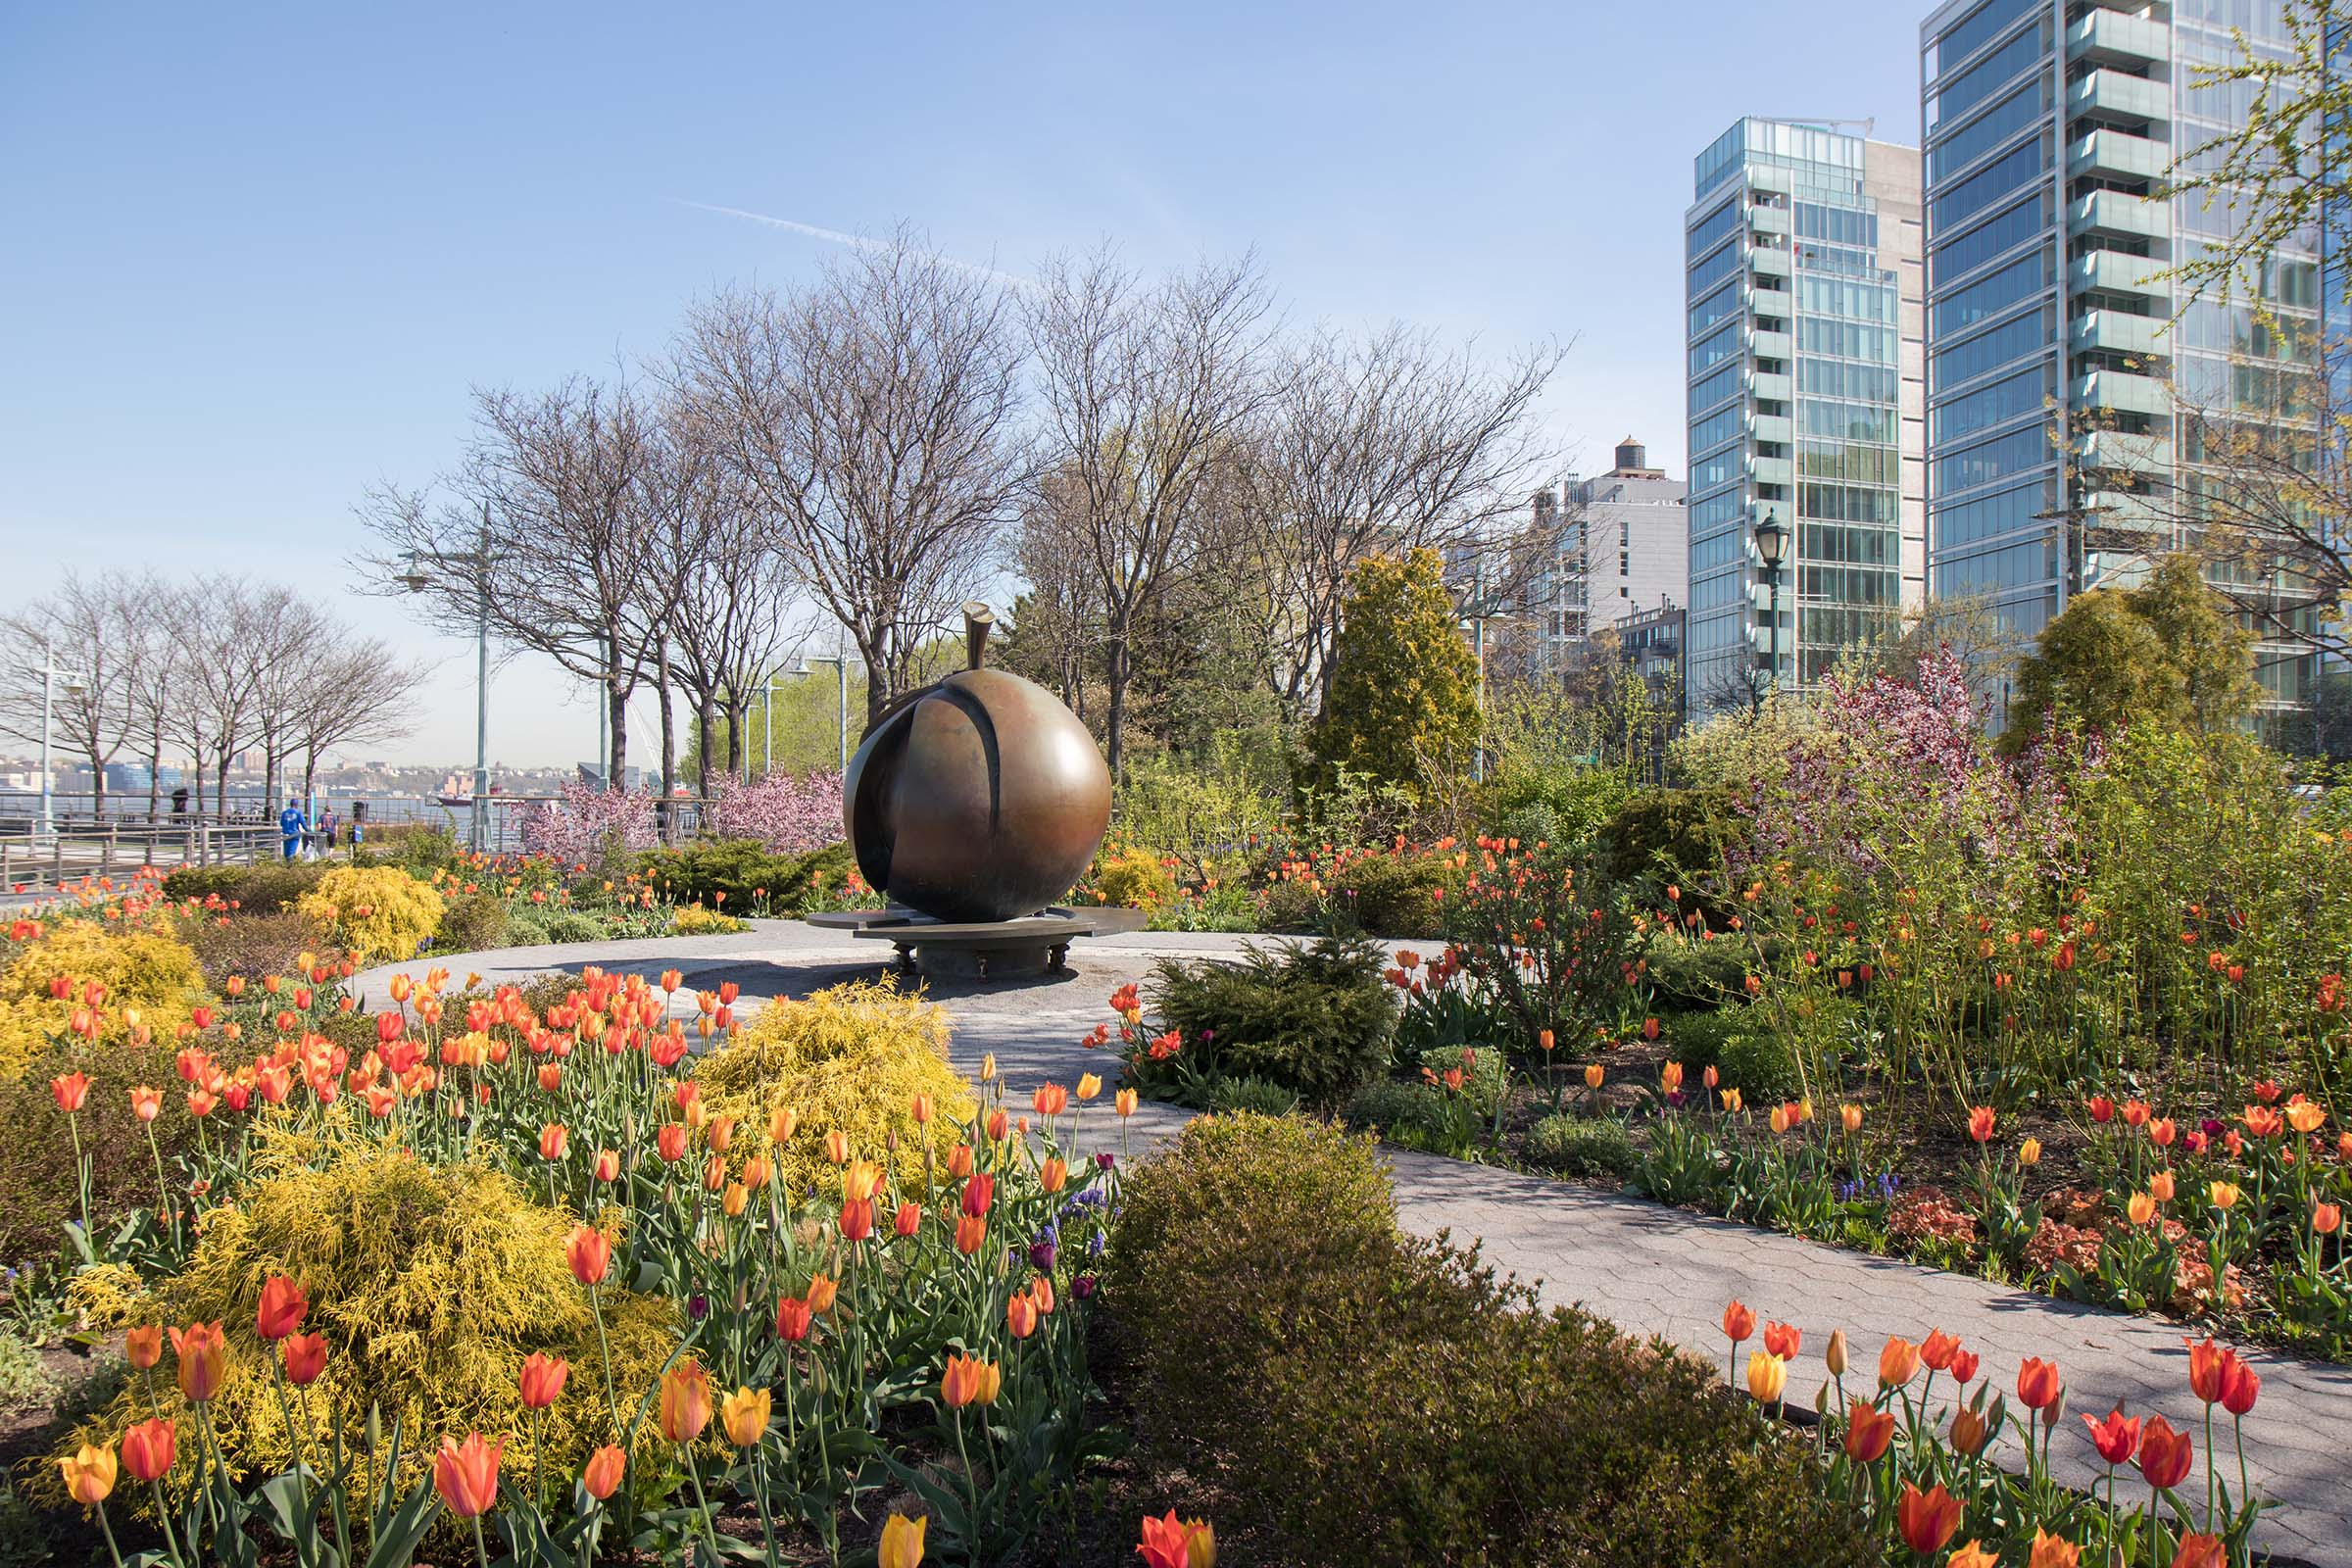 Lush green and yellow bushes and tulips circle the bronze Apple statue